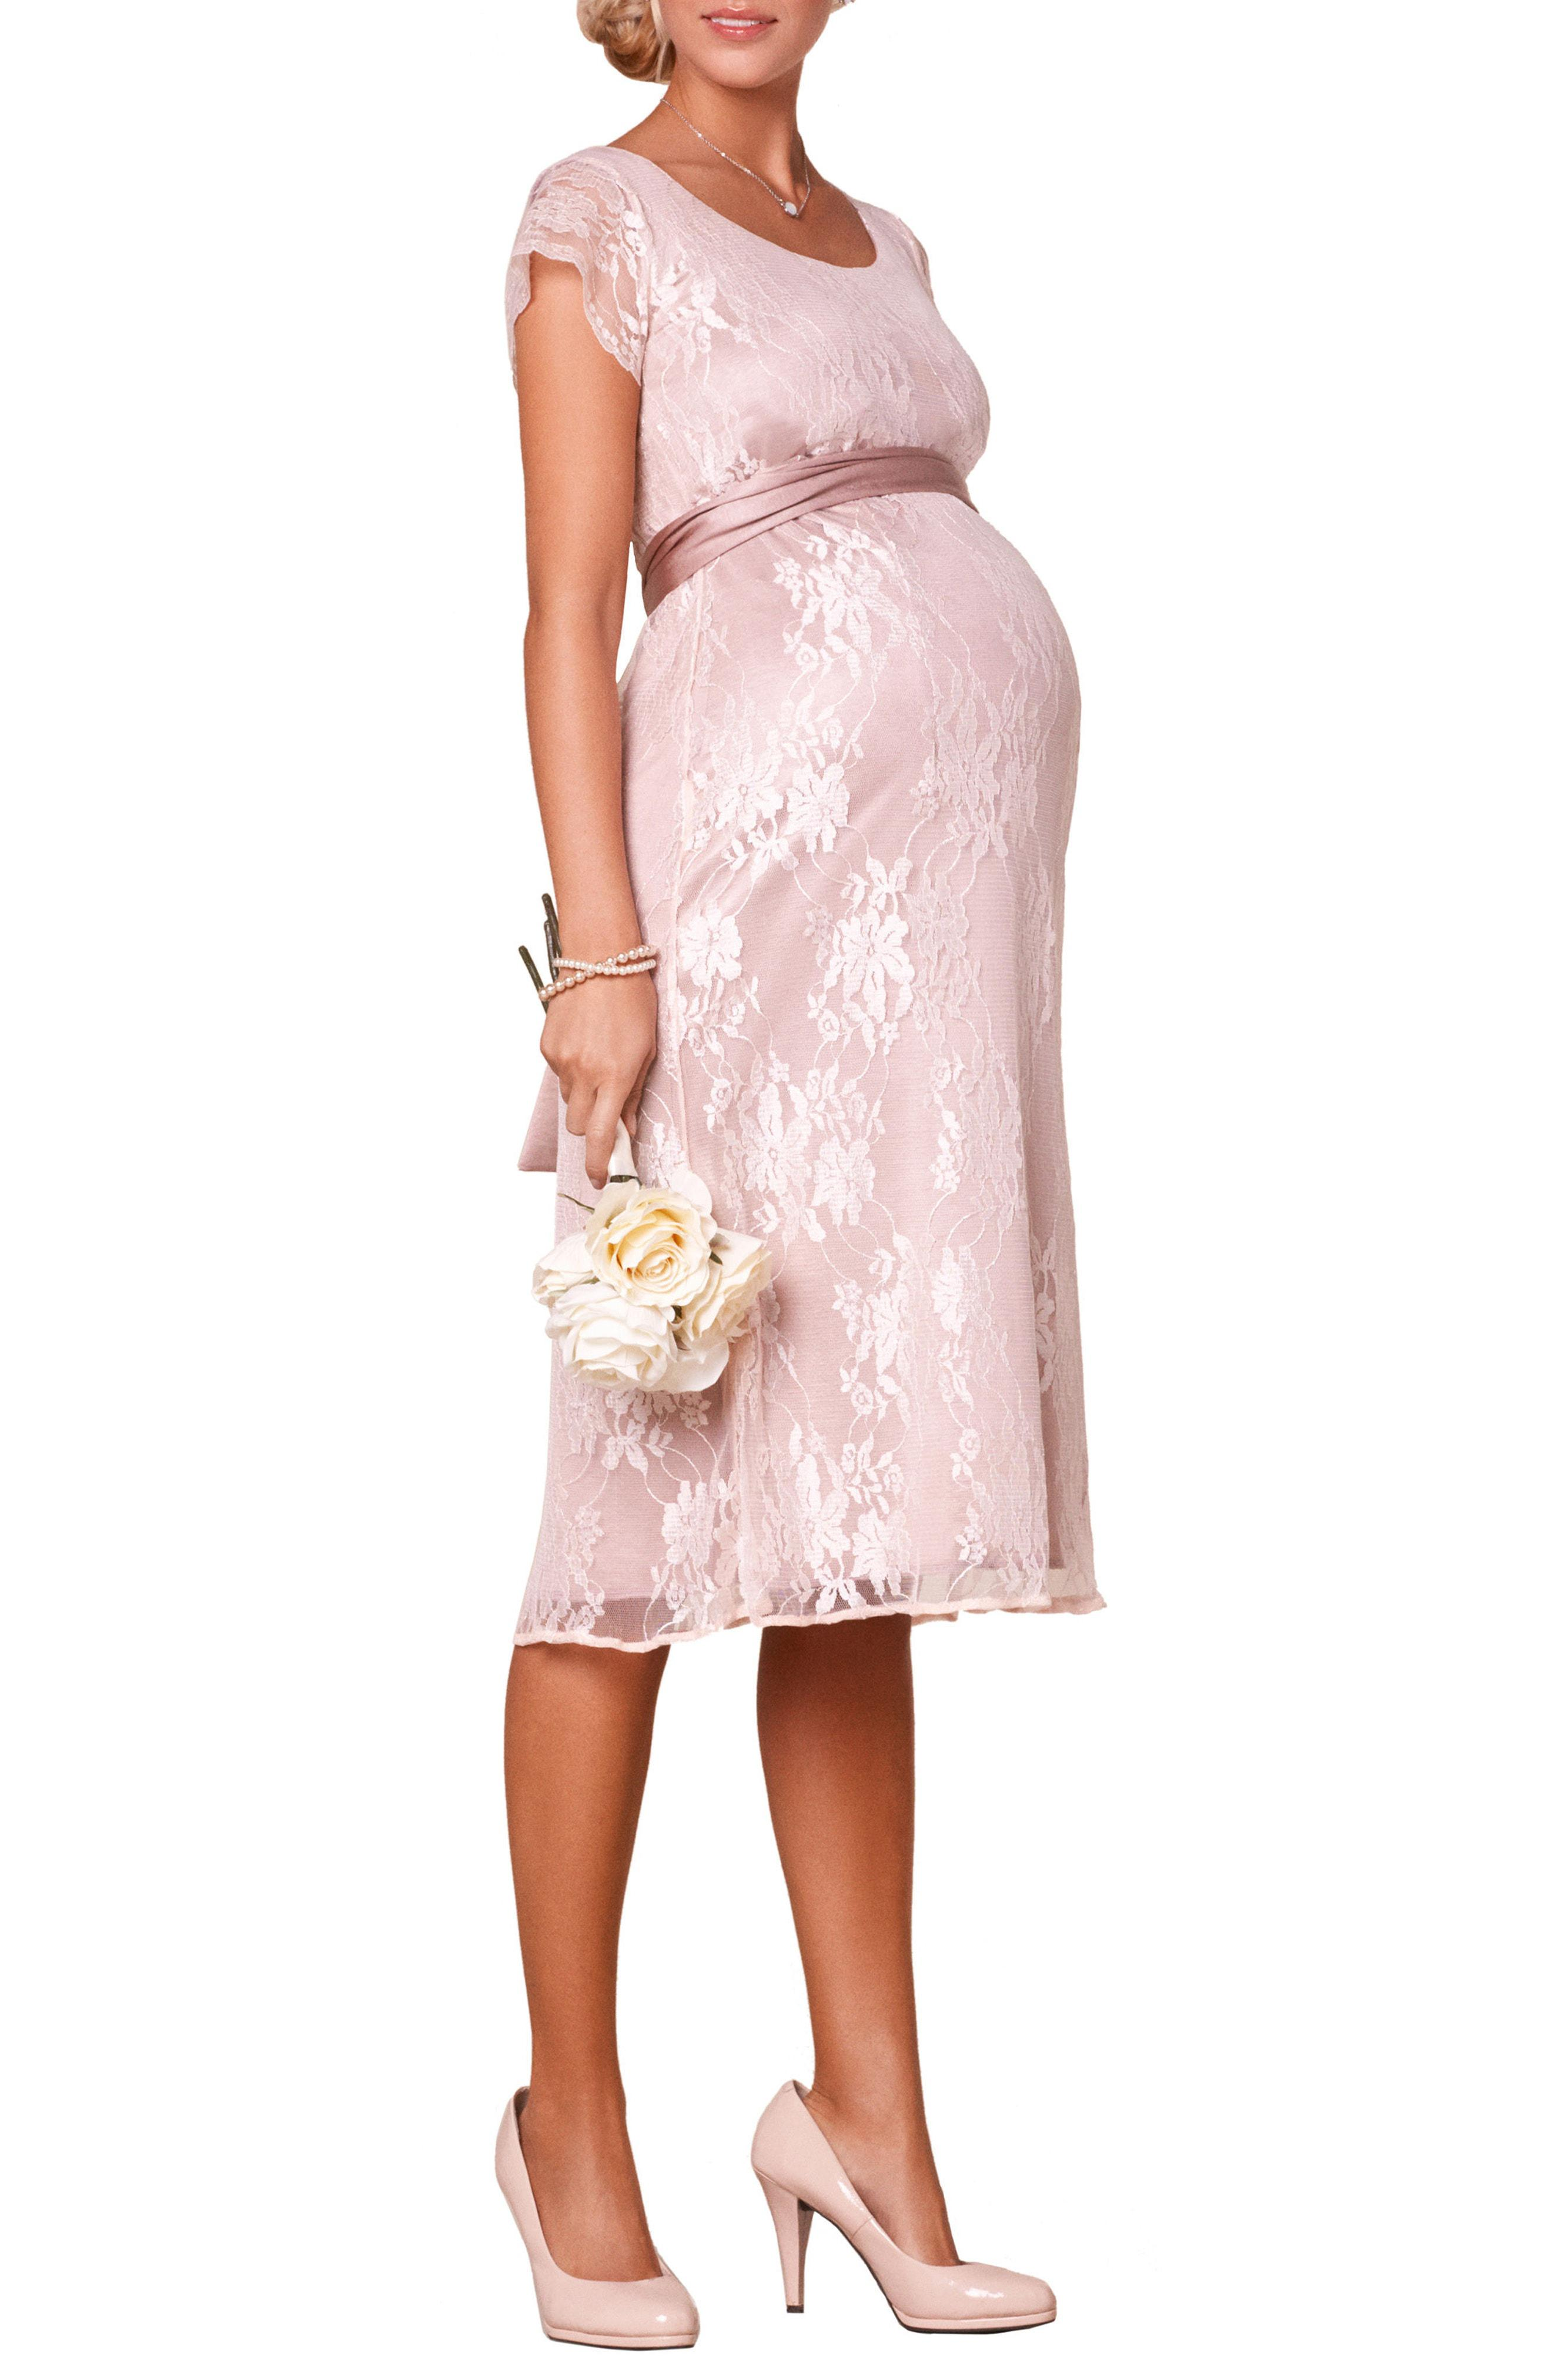 2436d82dc7e TIFFANY ROSE April Maternity nursing Dress in Pink - Lyst